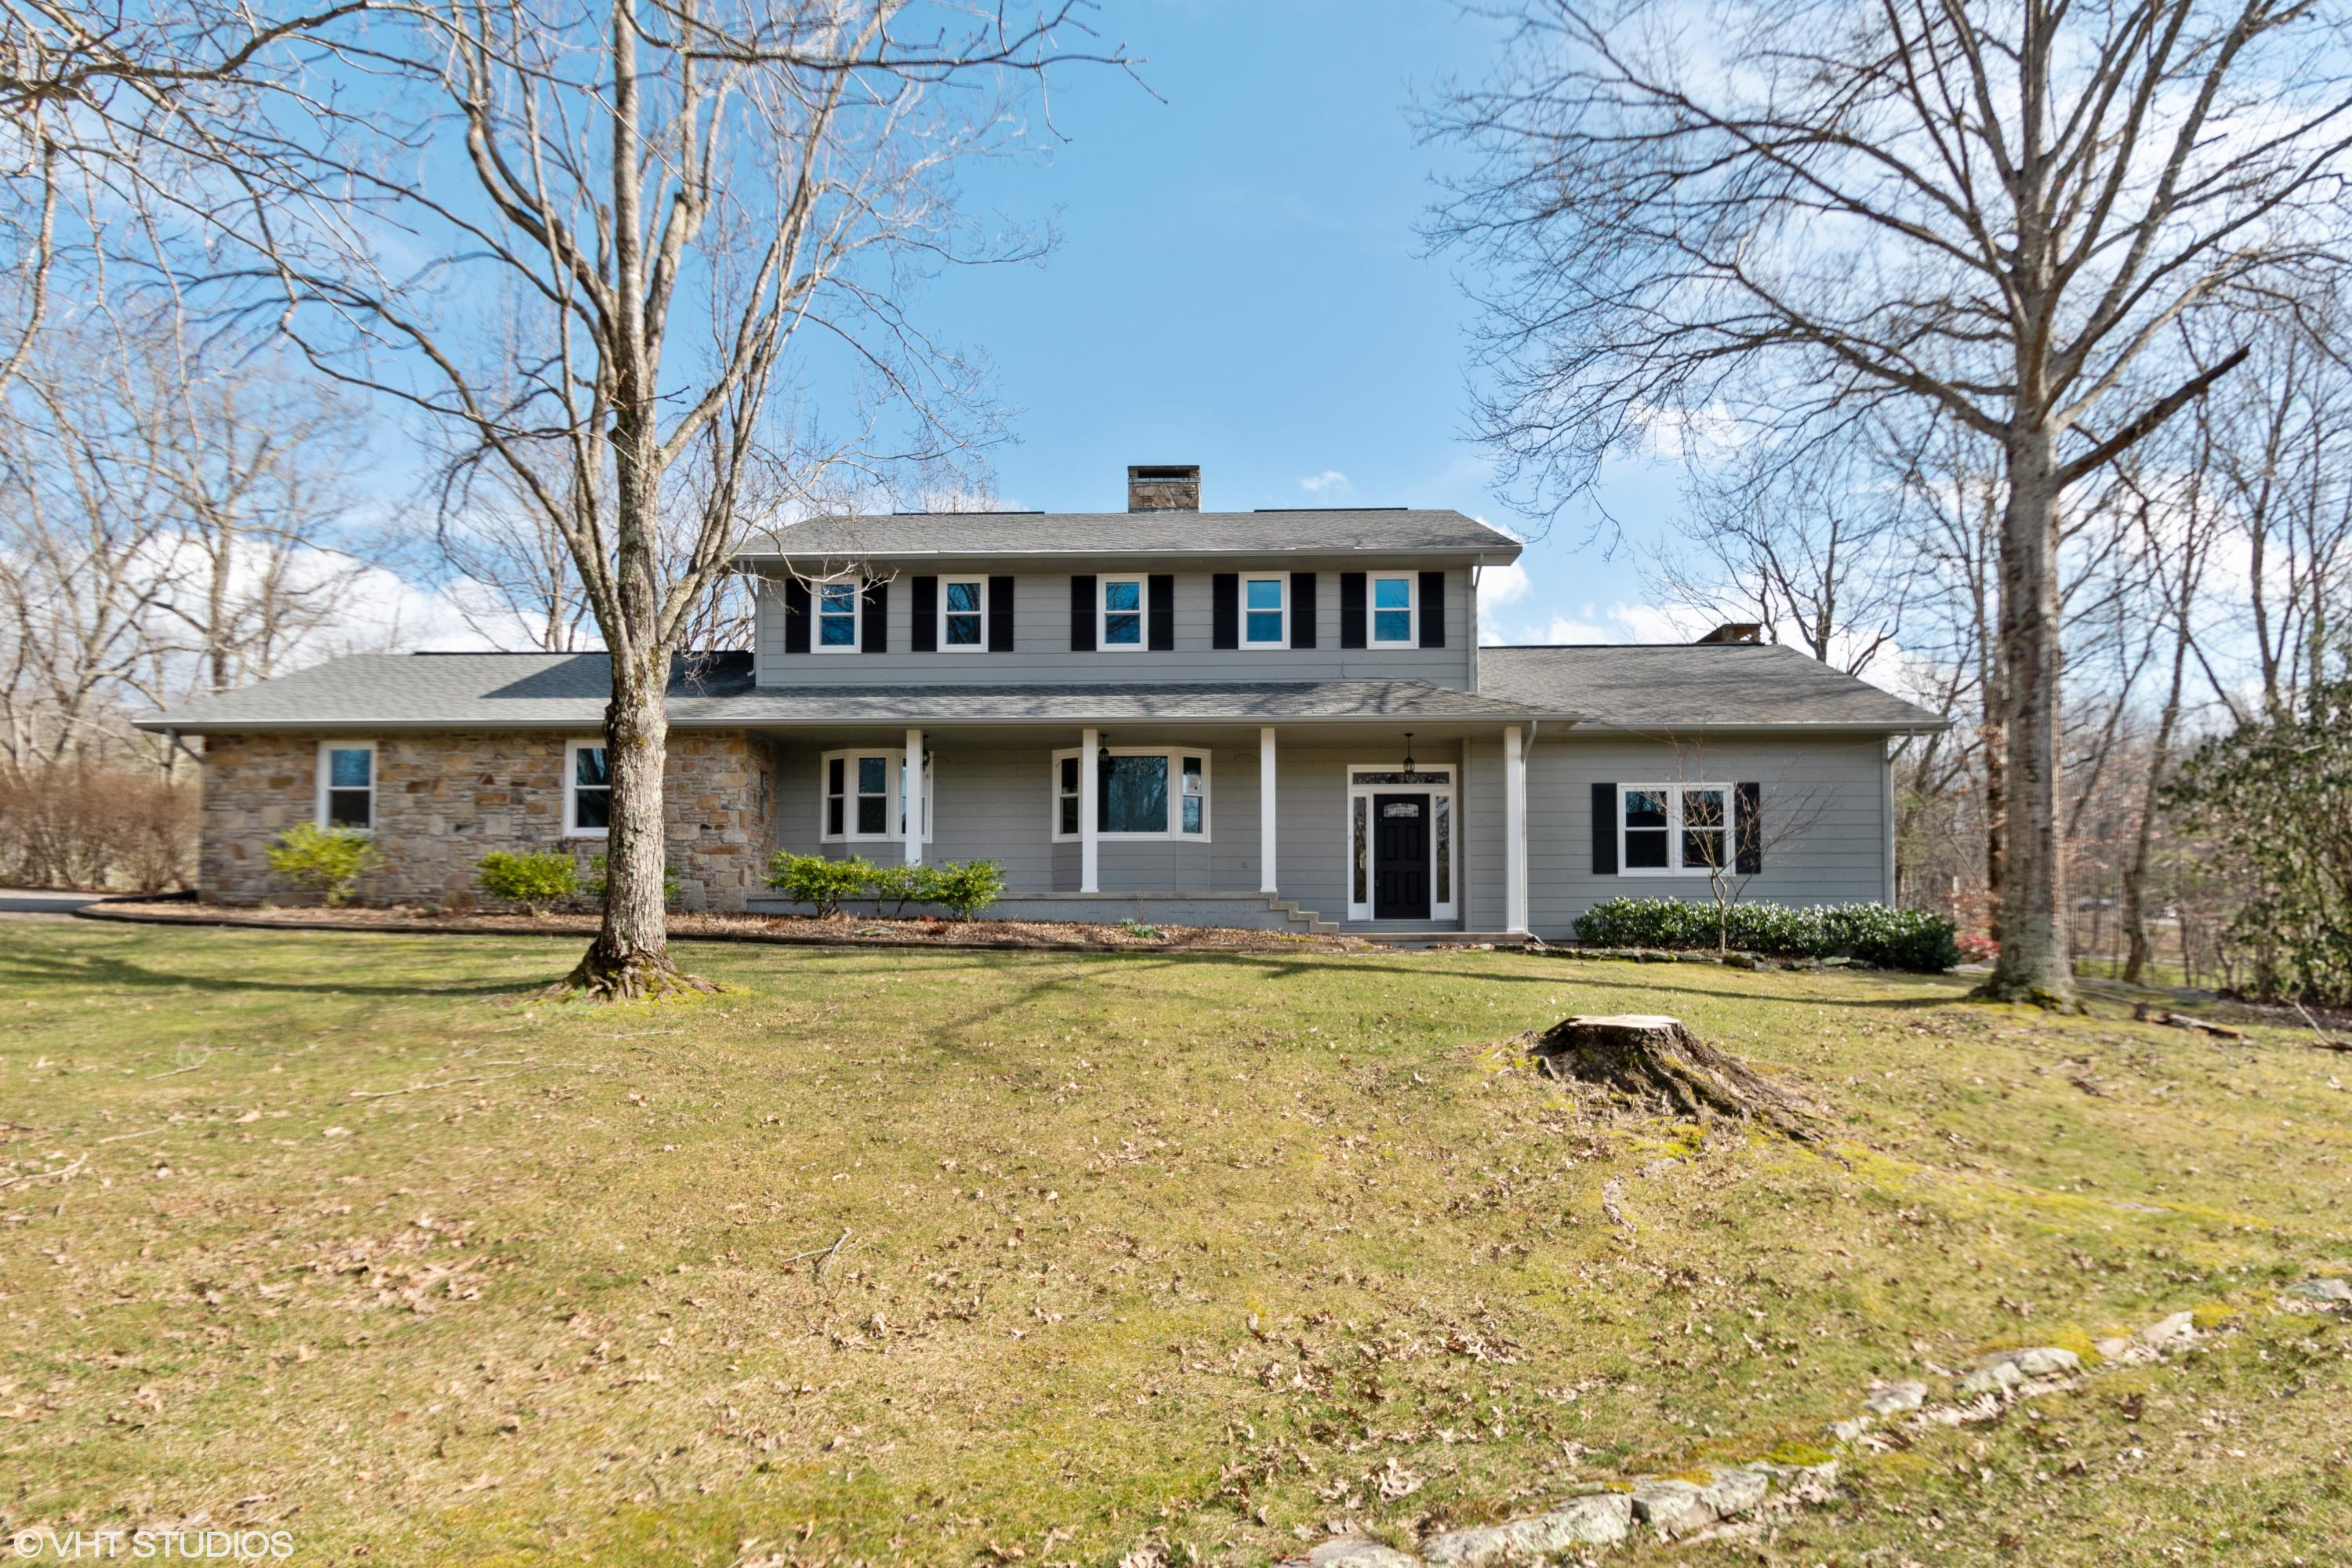 25 Cloverdale Circle, Crossville, Tennessee 38558, 4 Bedrooms Bedrooms, ,3 BathroomsBathrooms,Single Family,For Sale,Cloverdale,1075716